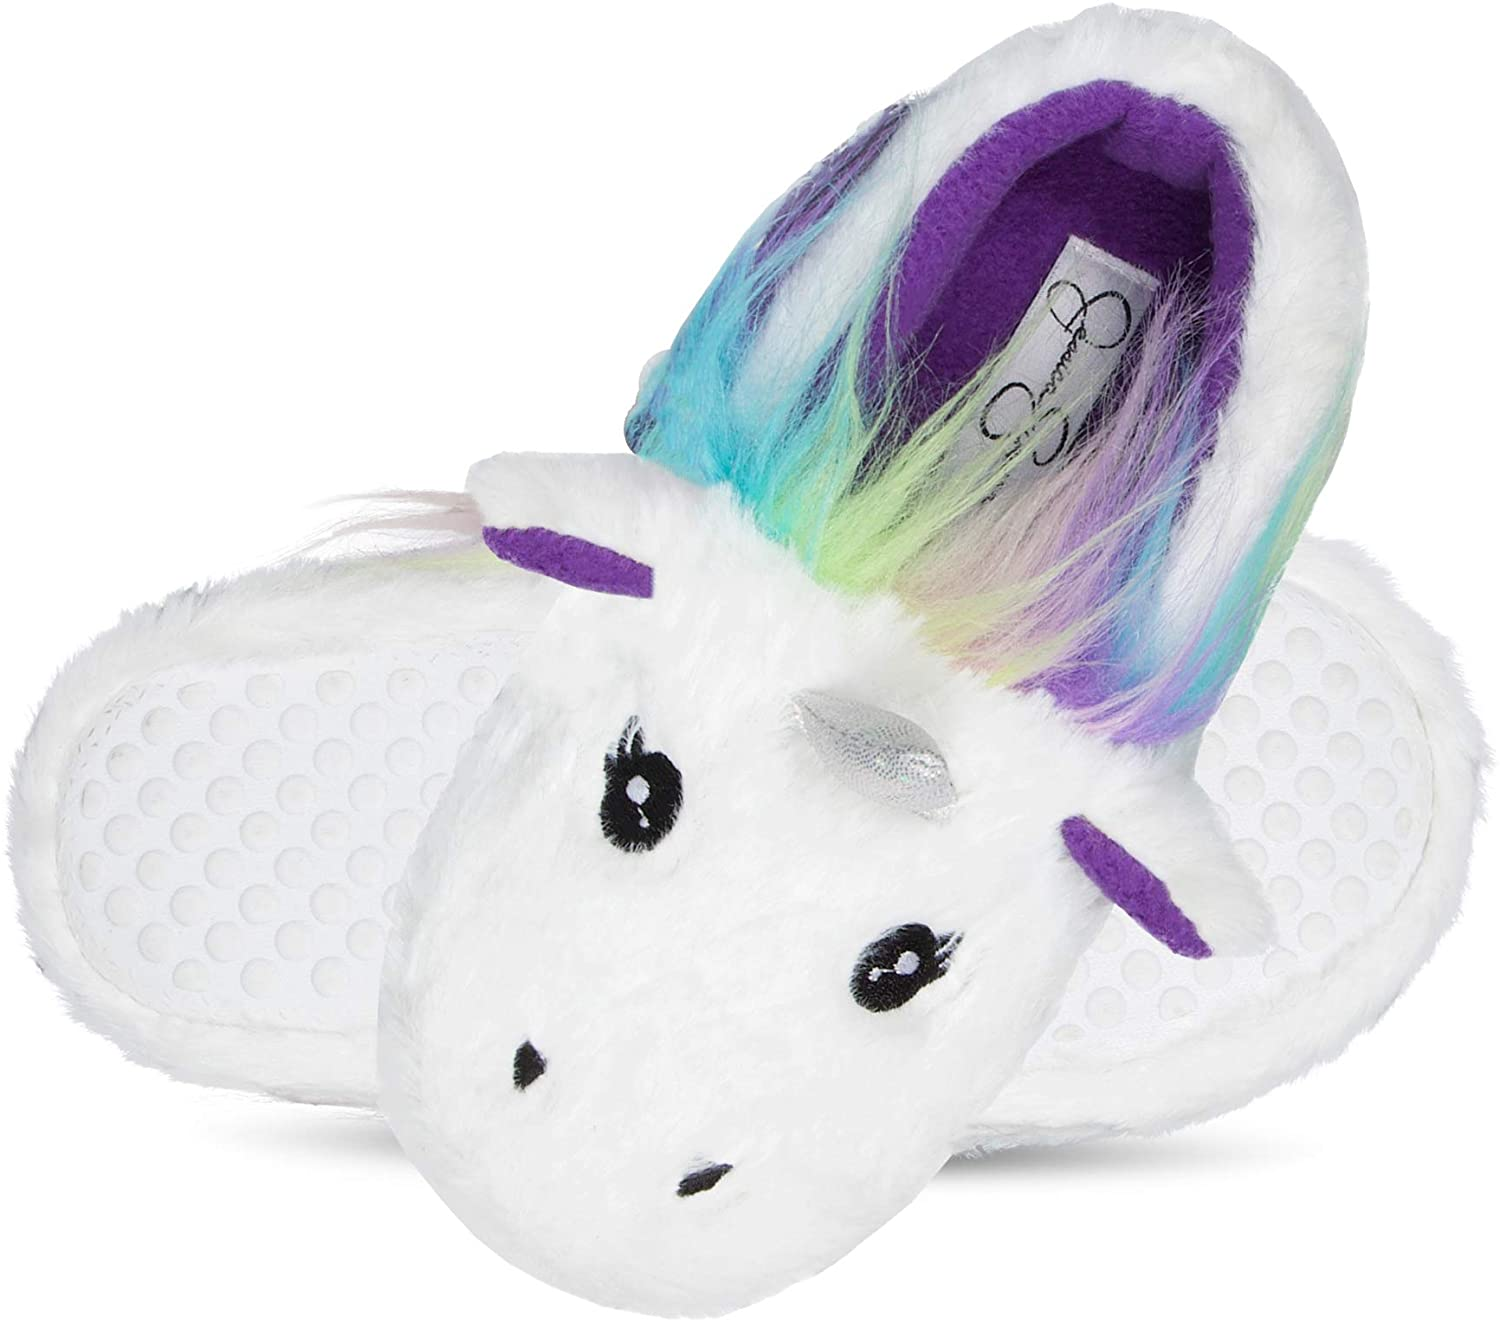 Jessica Simpson Max 51% OFF Girls Cute and Cozy Plush Slippers on Now on sale Slip House